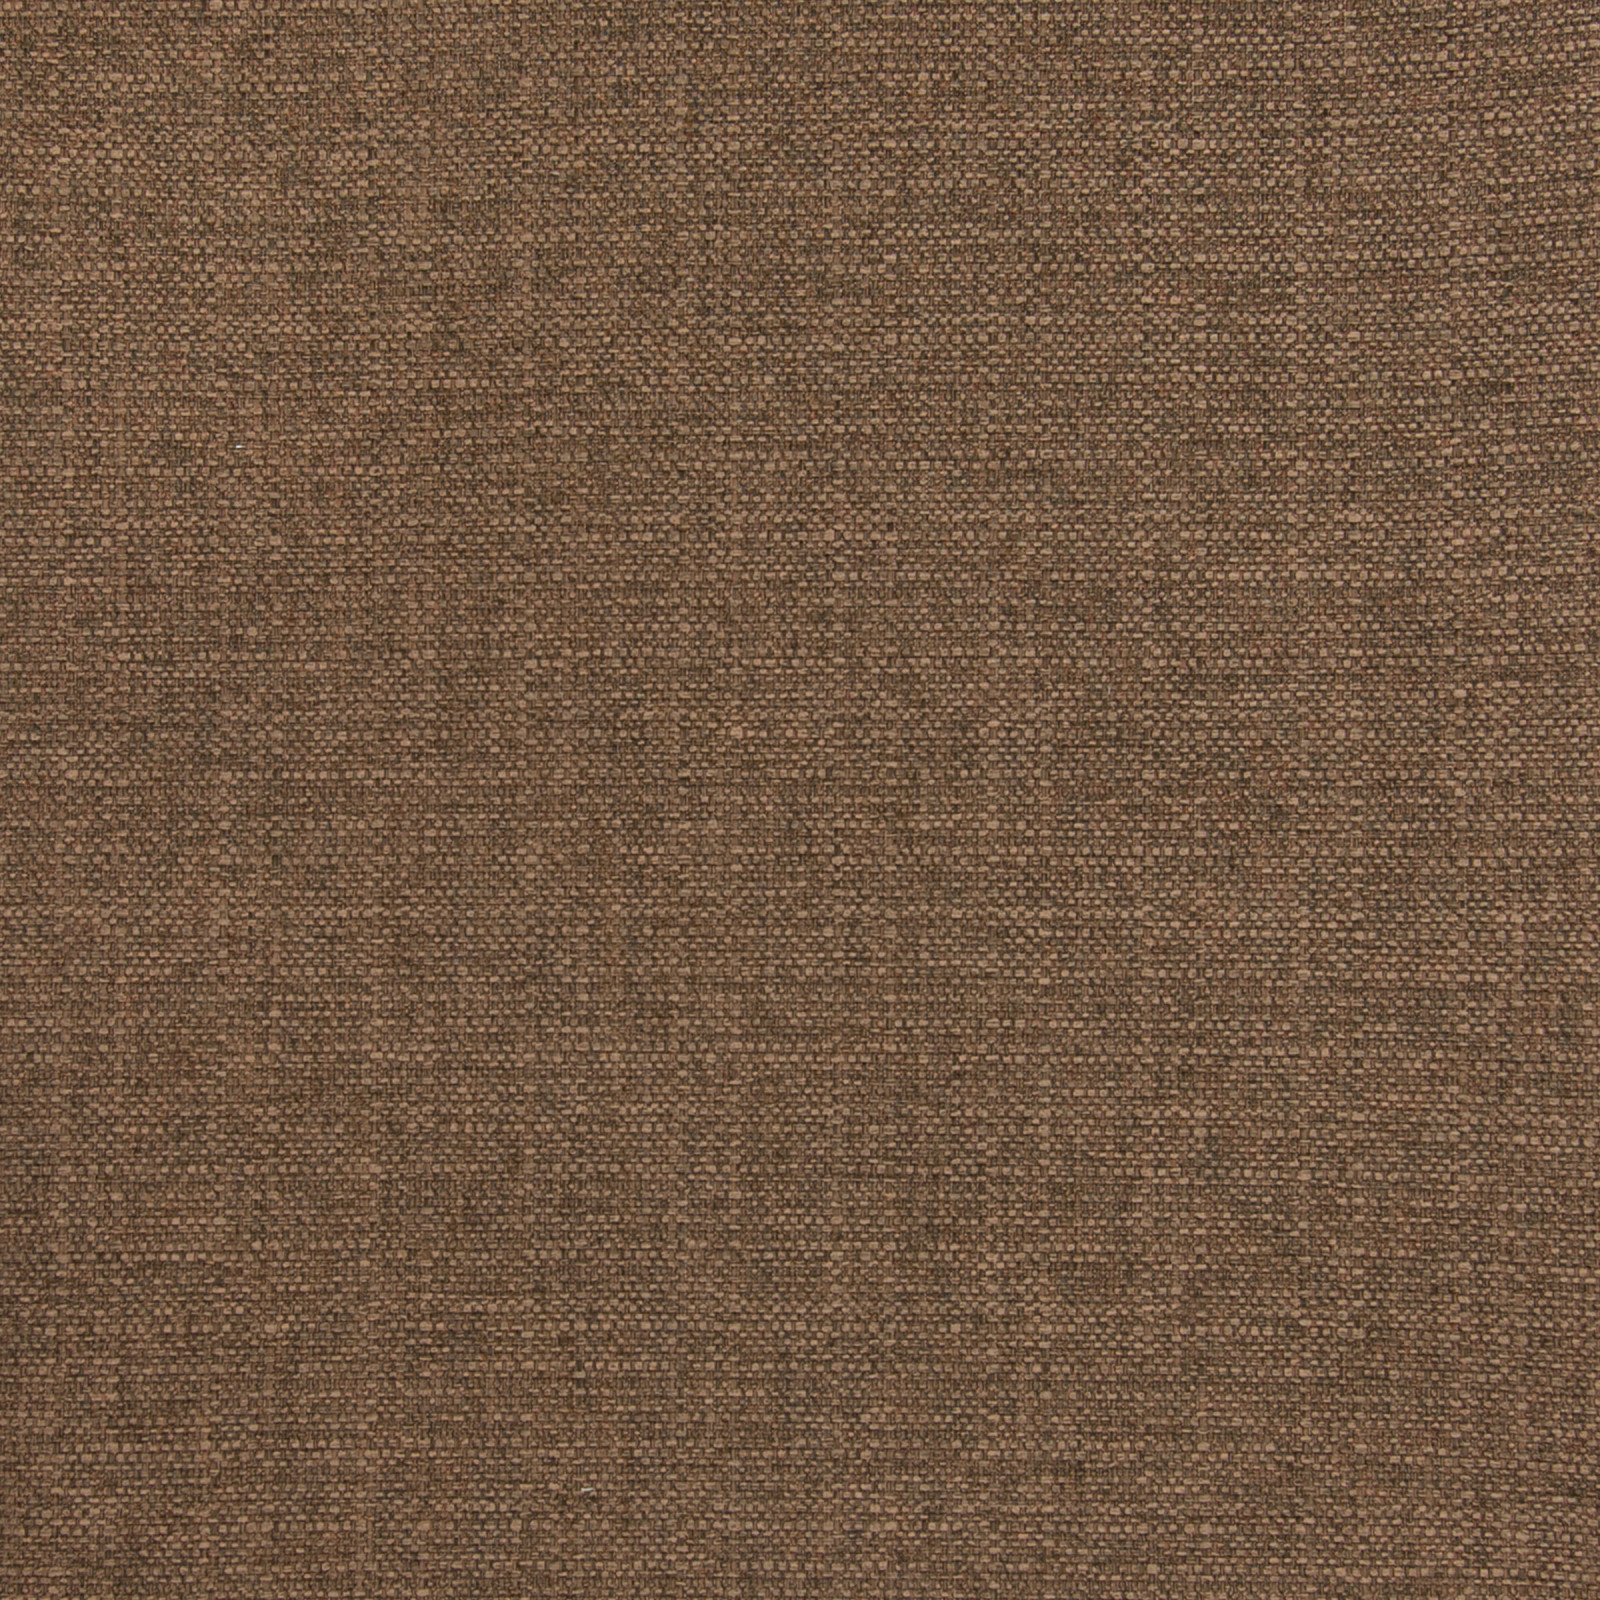 B5545 Chestnut Greenhouse Fabrics